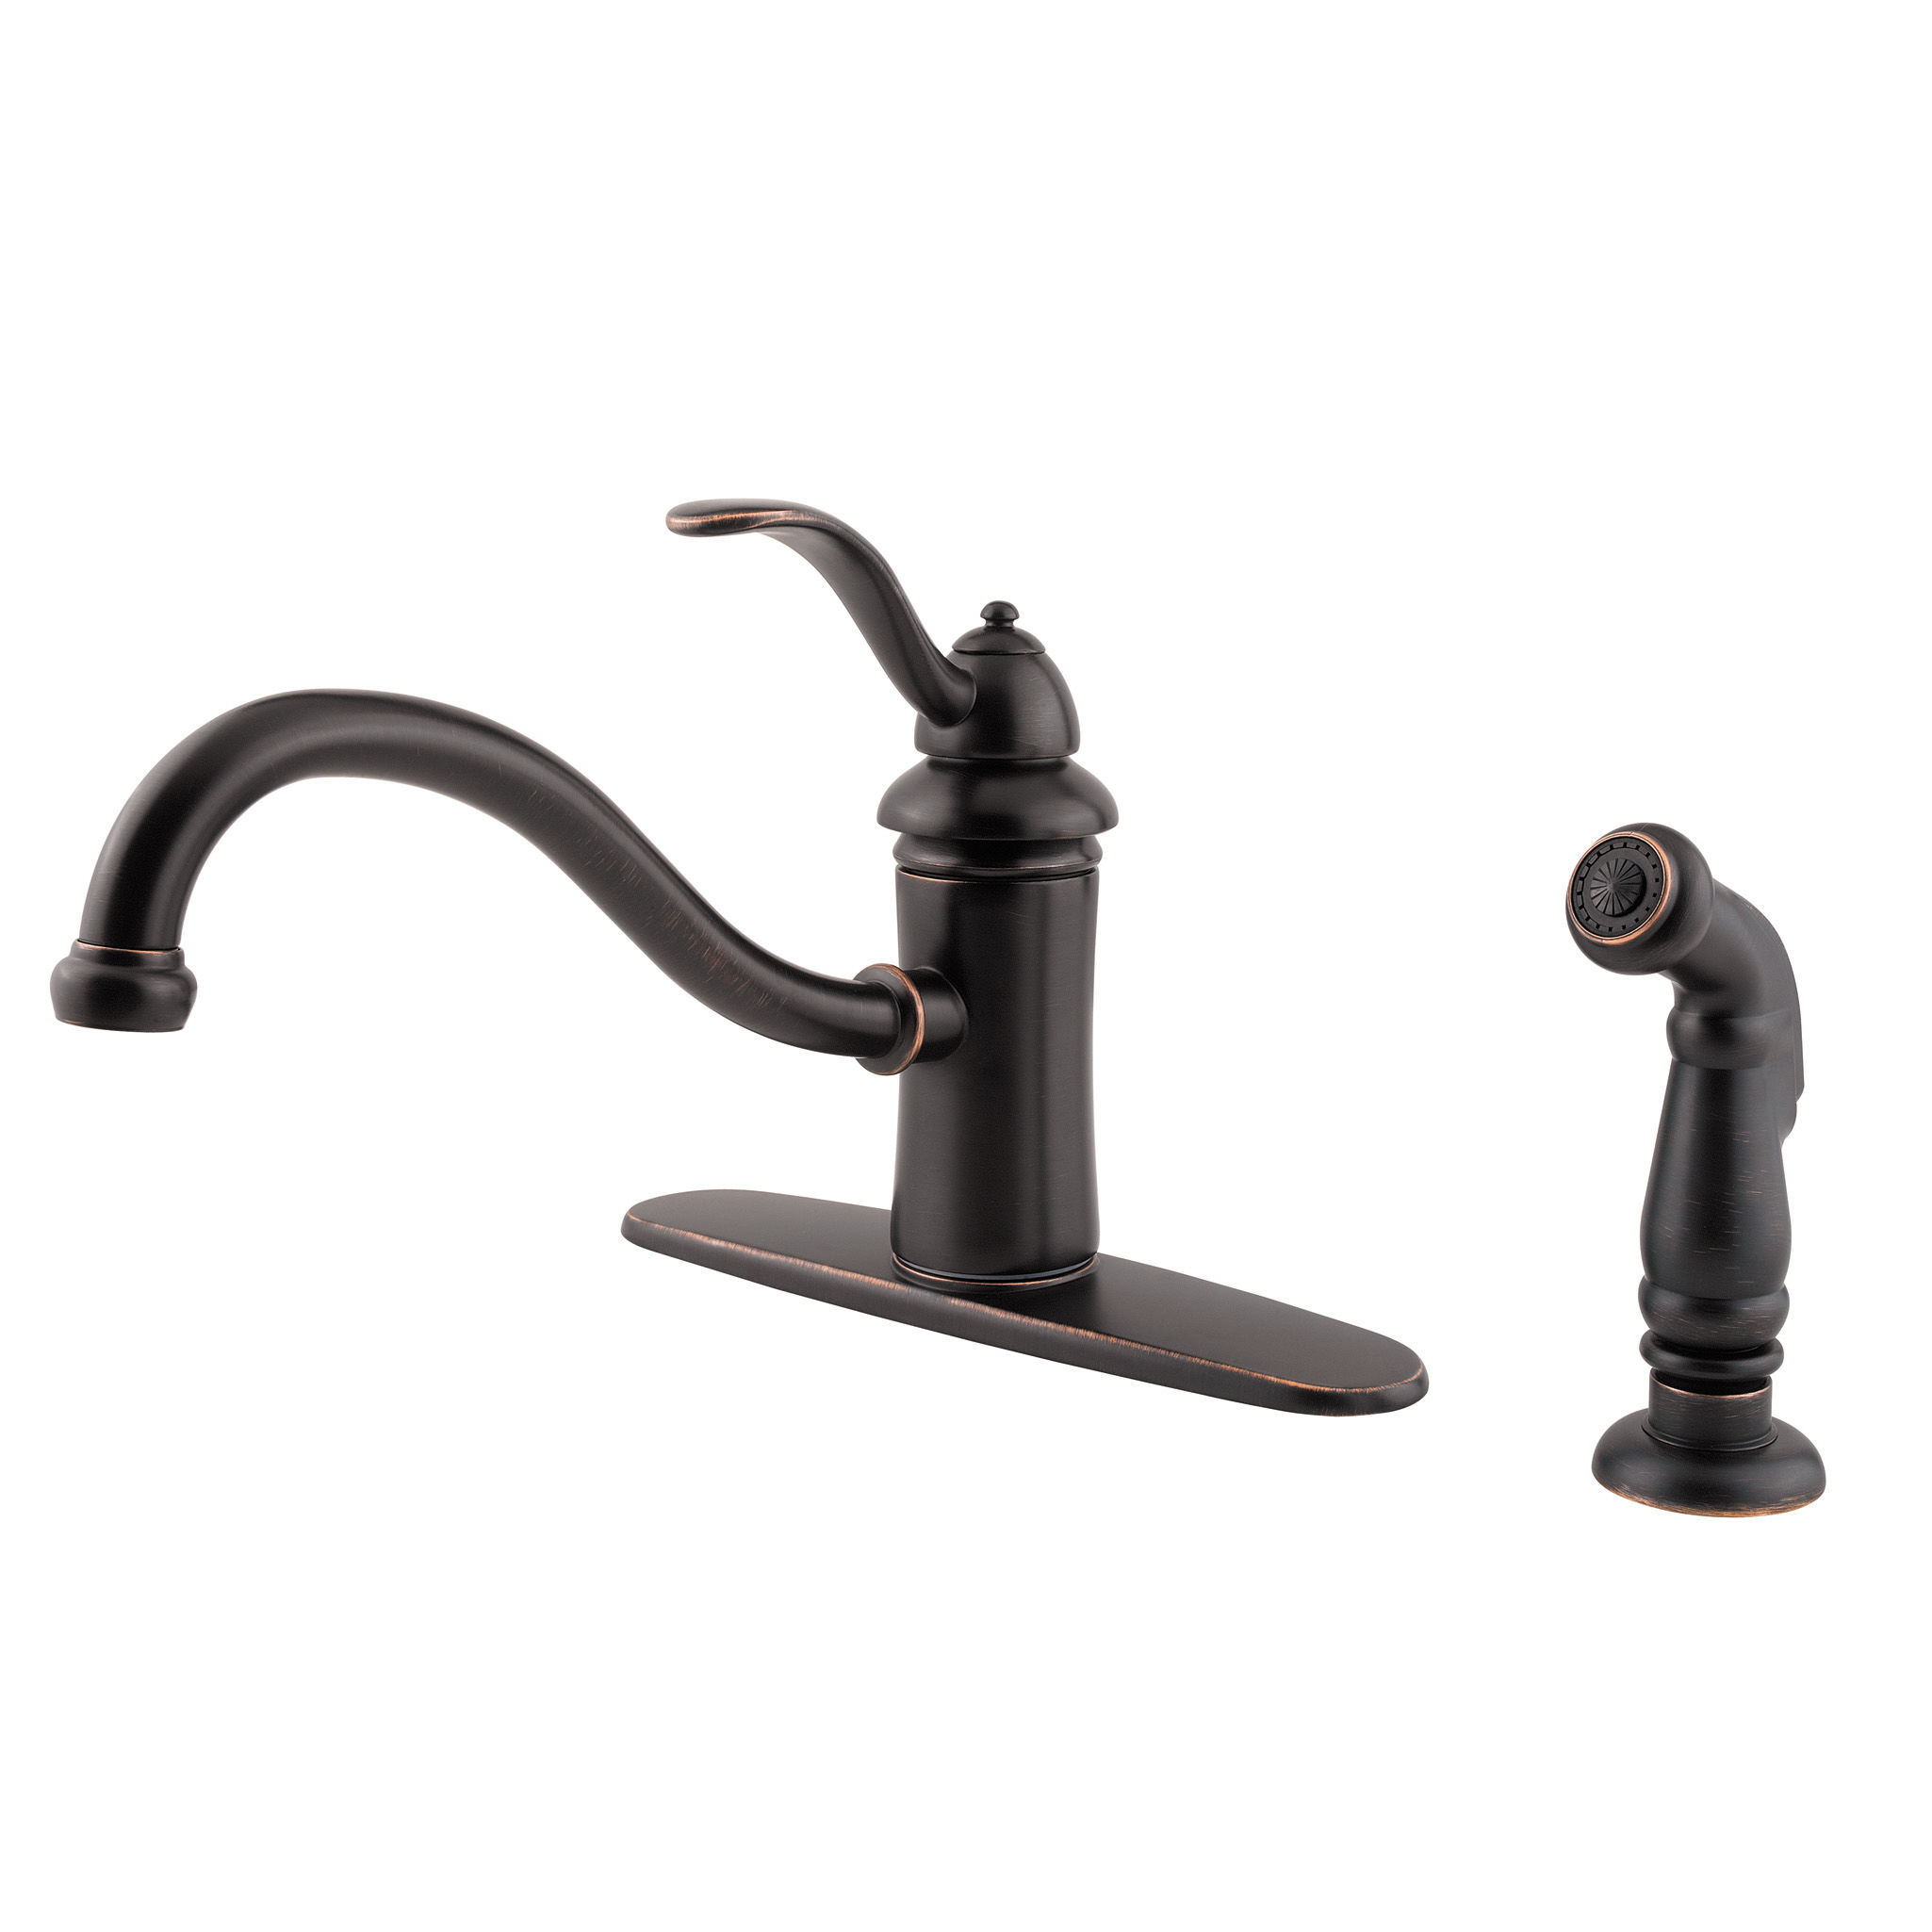 Pfister gt34 4tcc polished chrome marielle kitchen faucet with flex line supply lines and pfast connect technologies includes sidespray faucet com